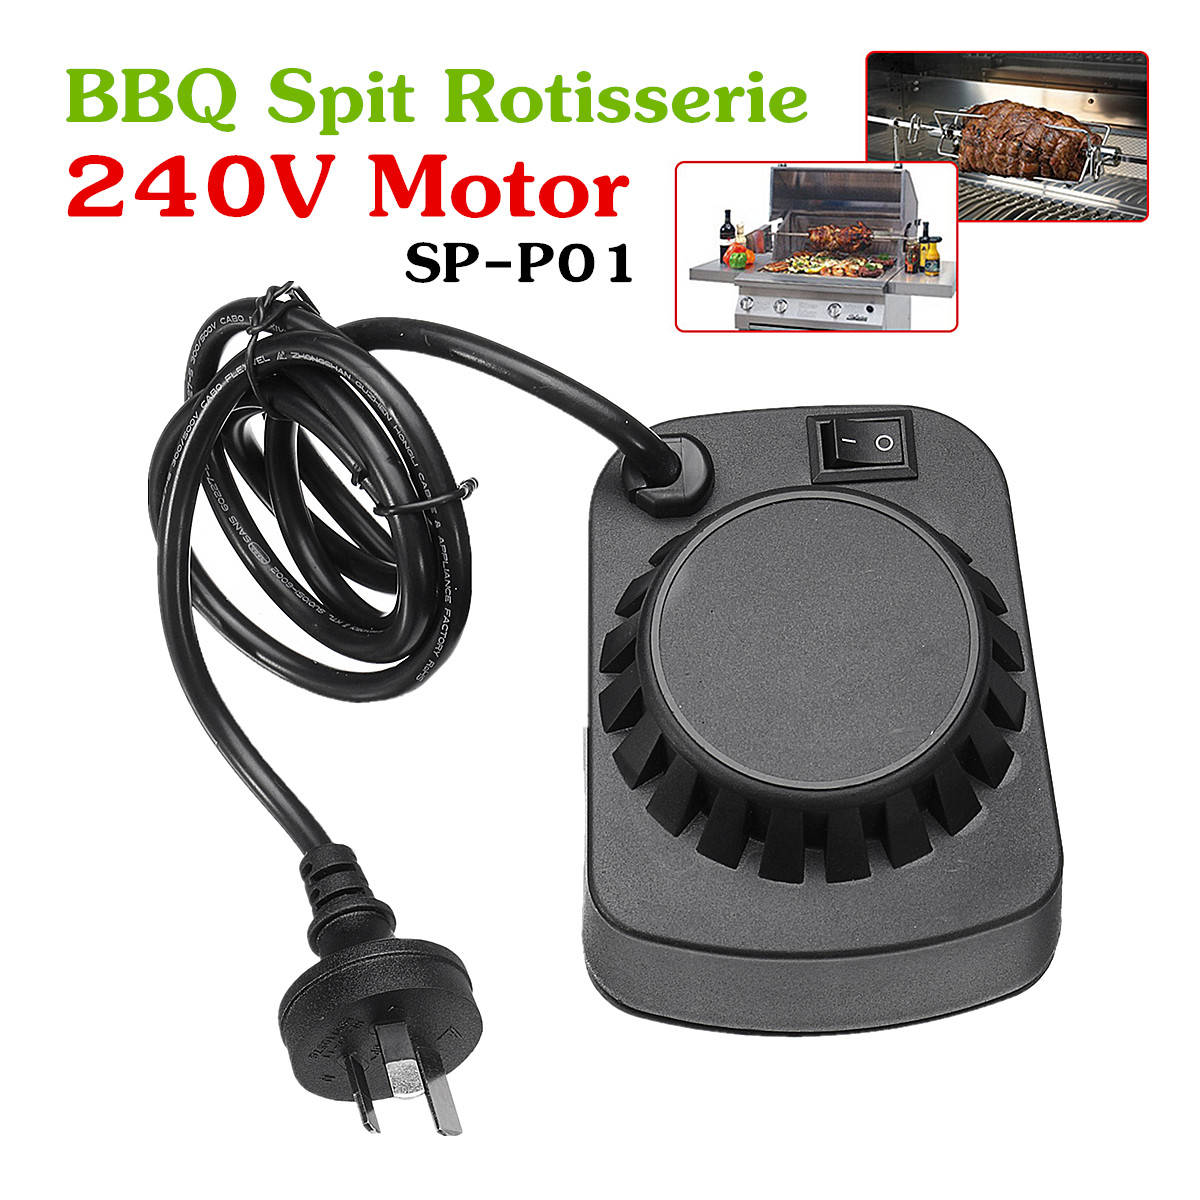 SP-P01 Barbeque BBQ Spit Rotisserie 240V Motor For Roasted Lambs Piglets Chicken AU Plug 2-3R.P.M SpeedSP-P01 Barbeque BBQ Spit Rotisserie 240V Motor For Roasted Lambs Piglets Chicken AU Plug 2-3R.P.M Speed